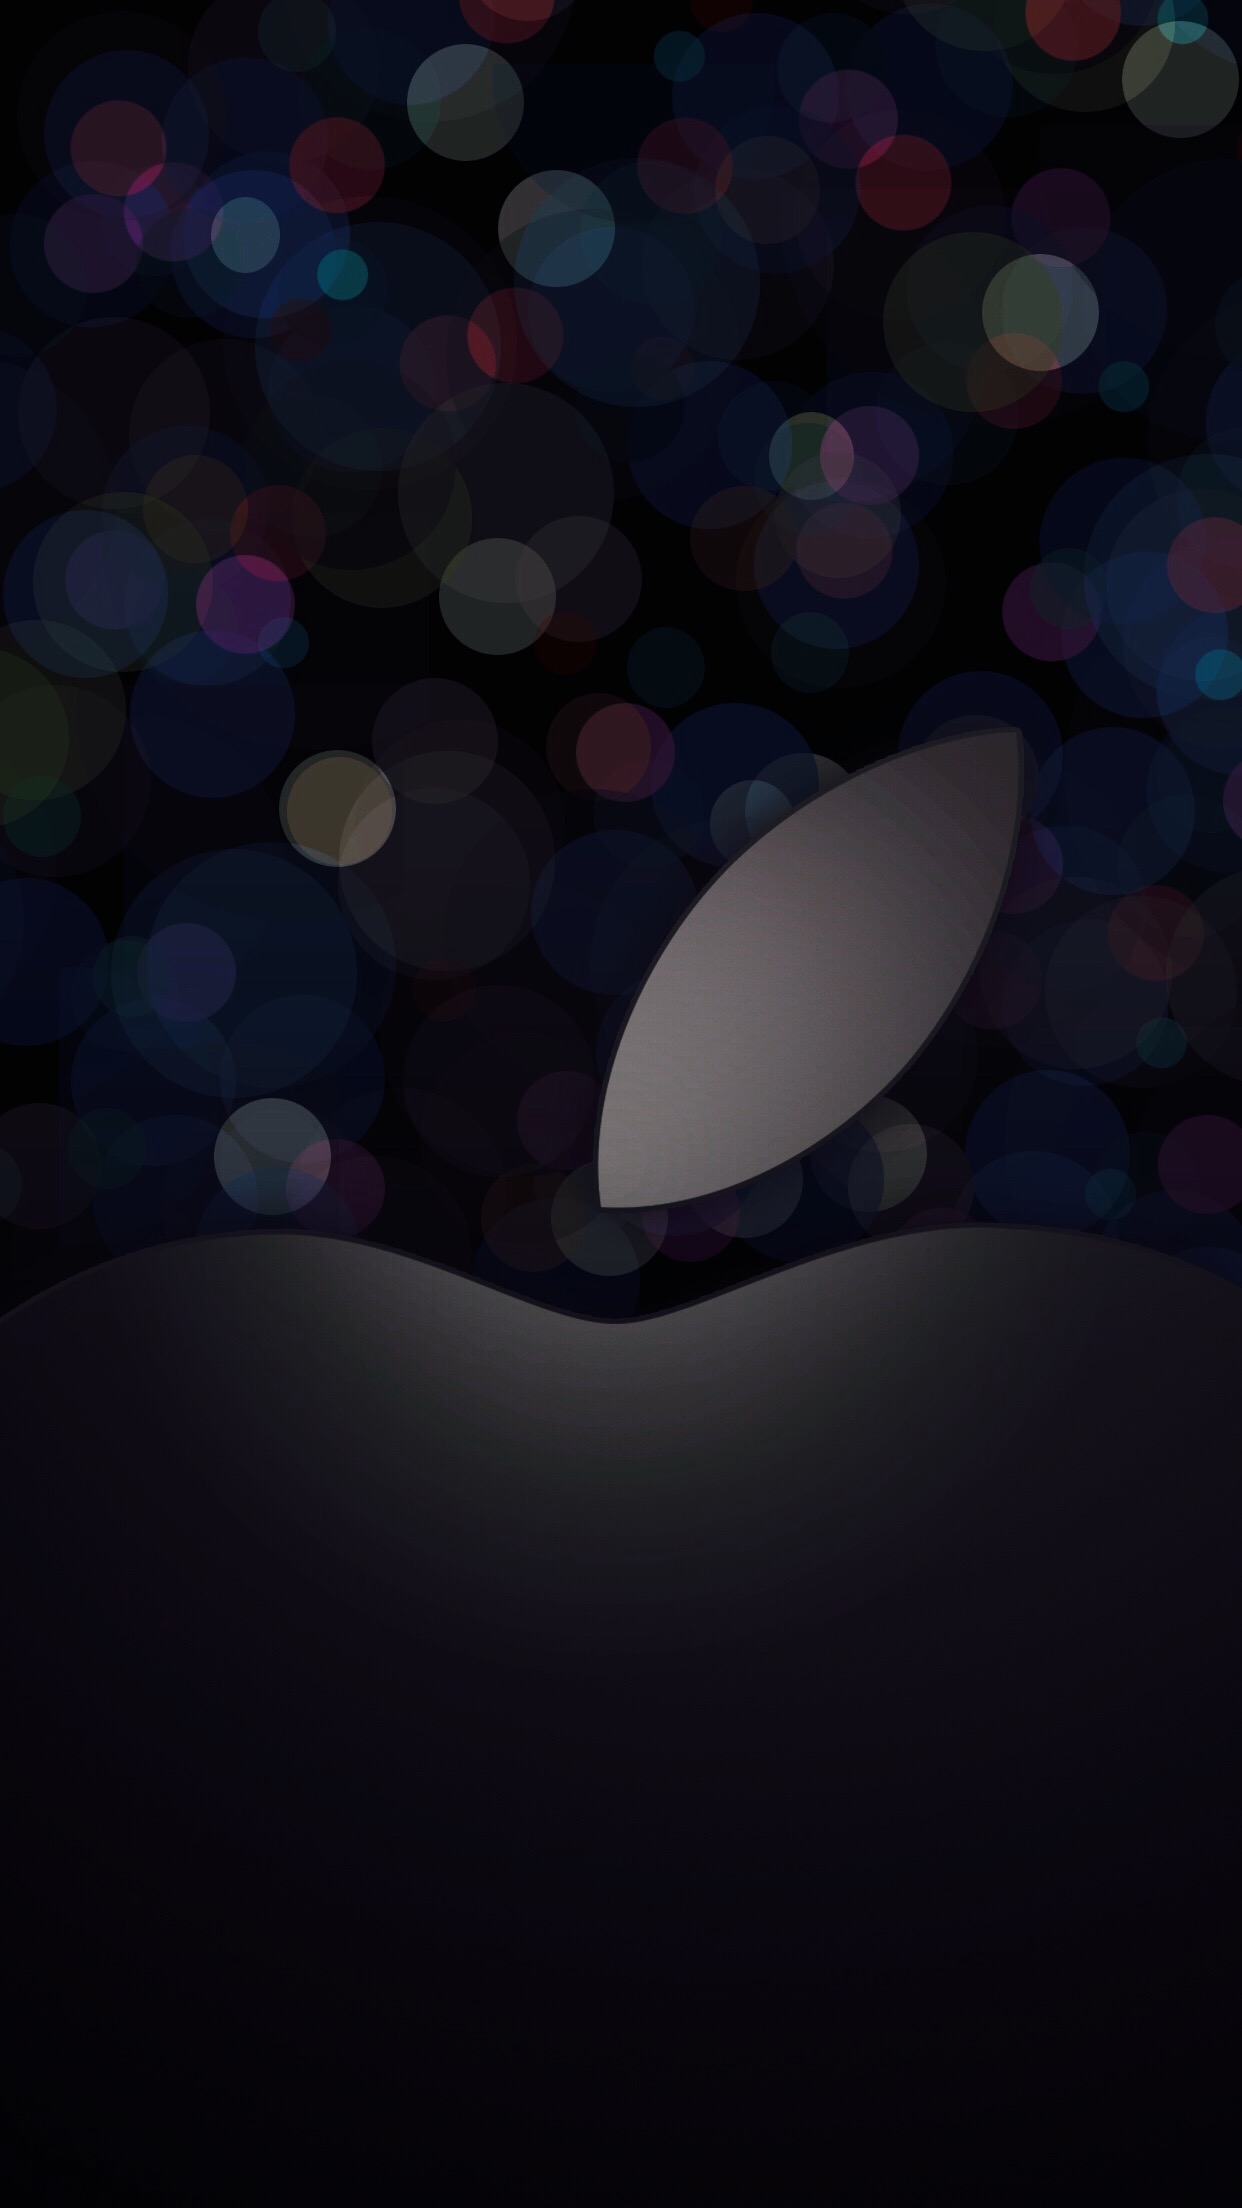 Apple September 7 event wallpaper ar7 custome2